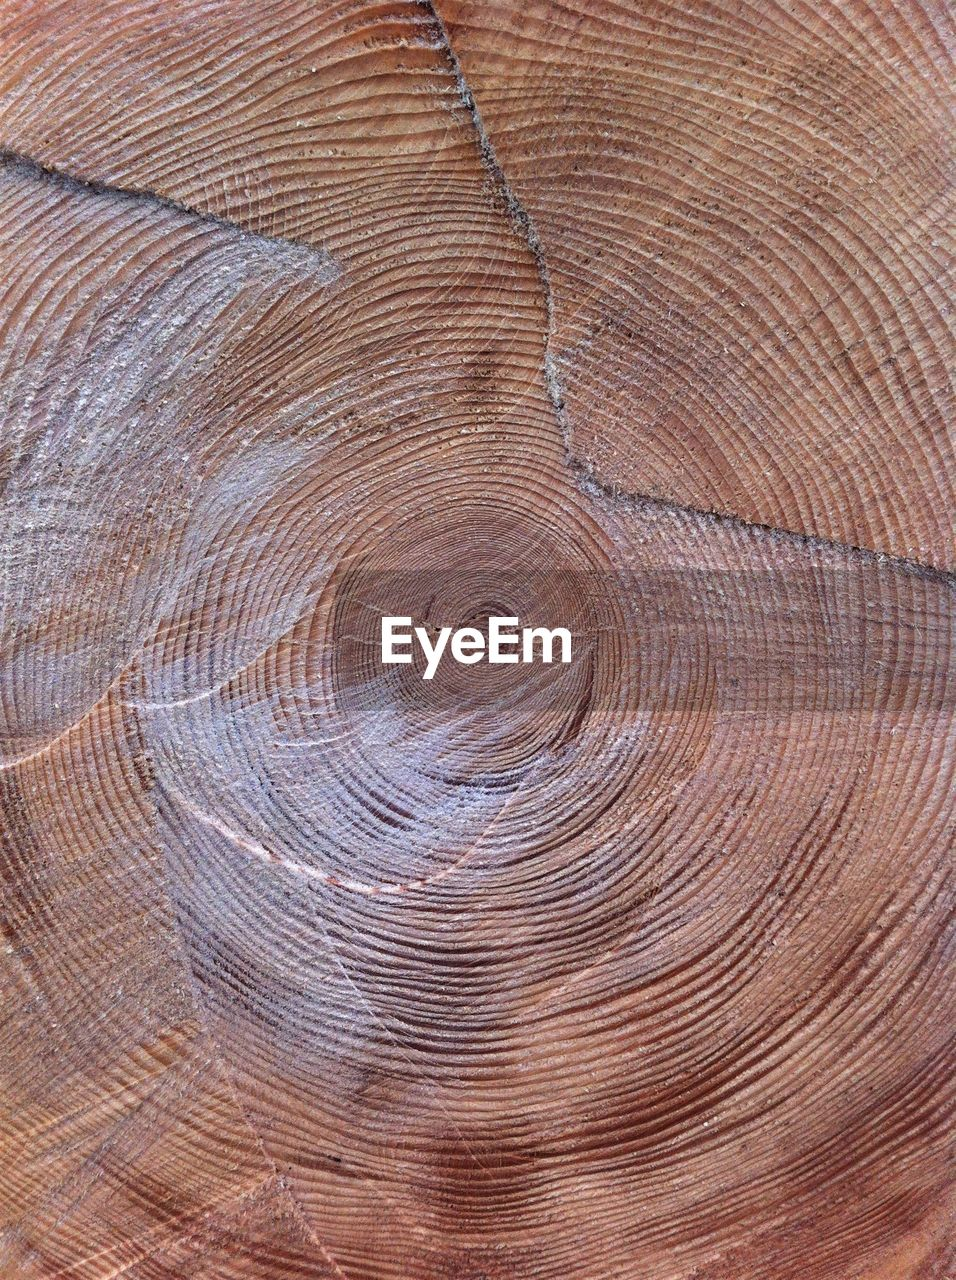 timber, backgrounds, pattern, nature, wood - material, textured, hardwood, cross section, lumber industry, material, brown, tree, full frame, tree trunk, wood grain, industry, close-up, no people, outdoors, concentric, tree ring, day